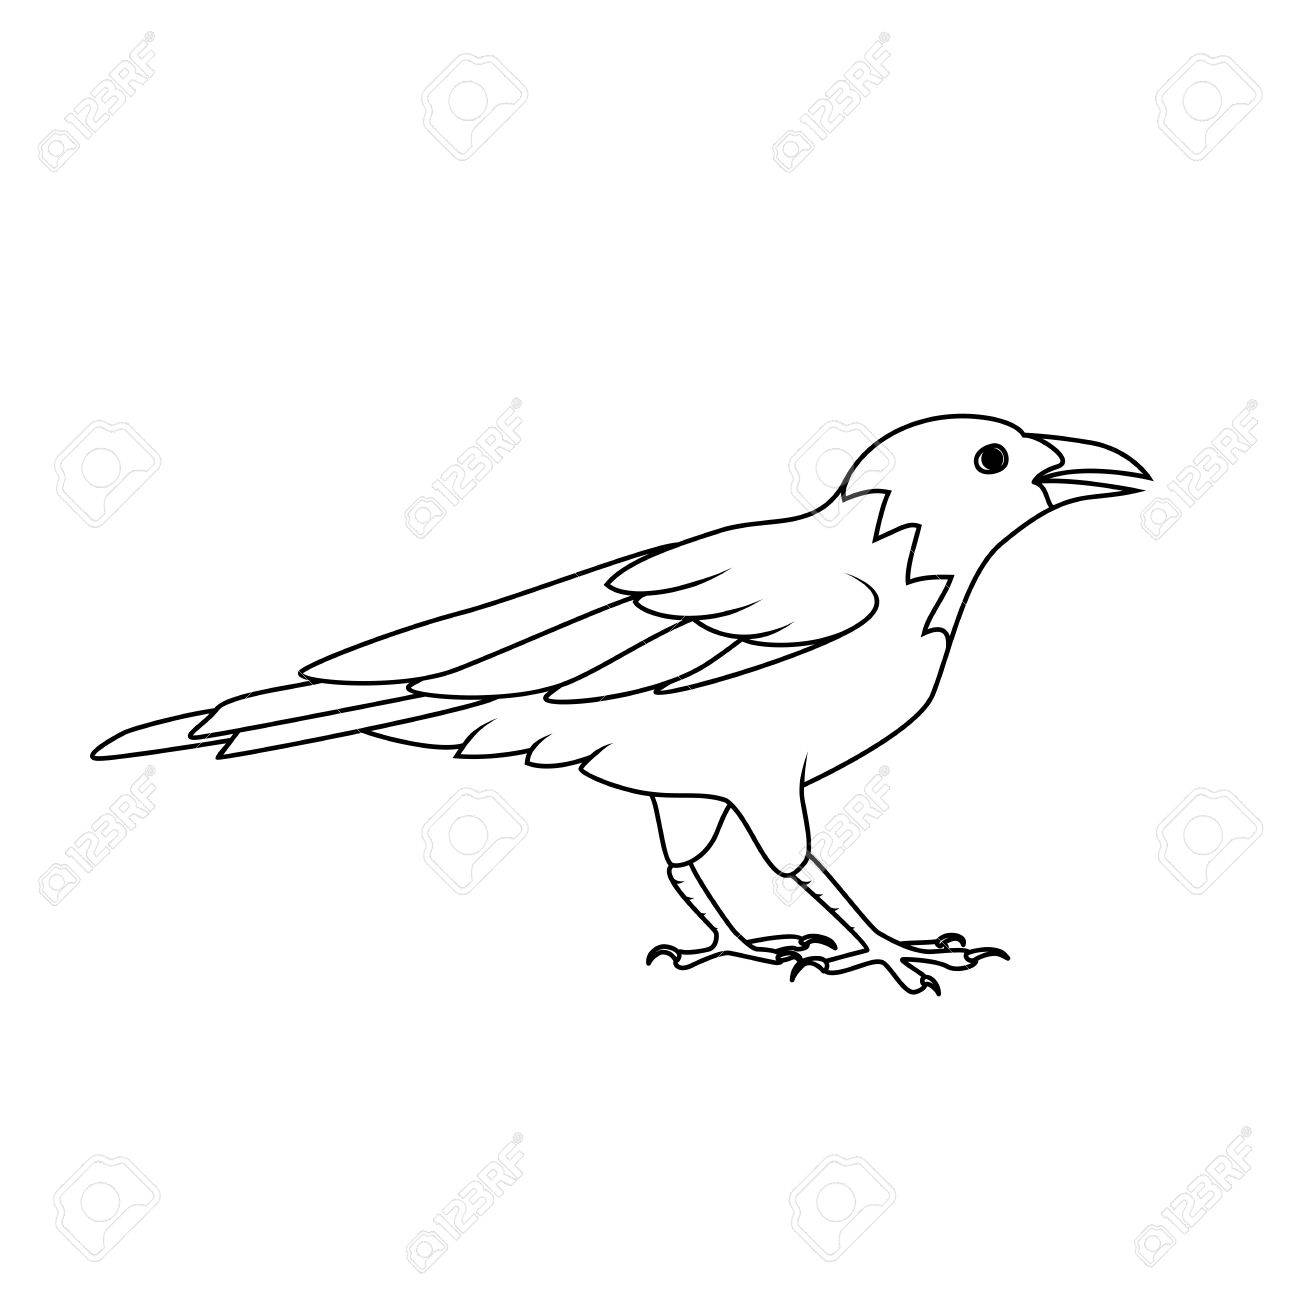 1300x1300 Coloring Book Crow Or Raven Royalty Free Cliparts, Vectors,